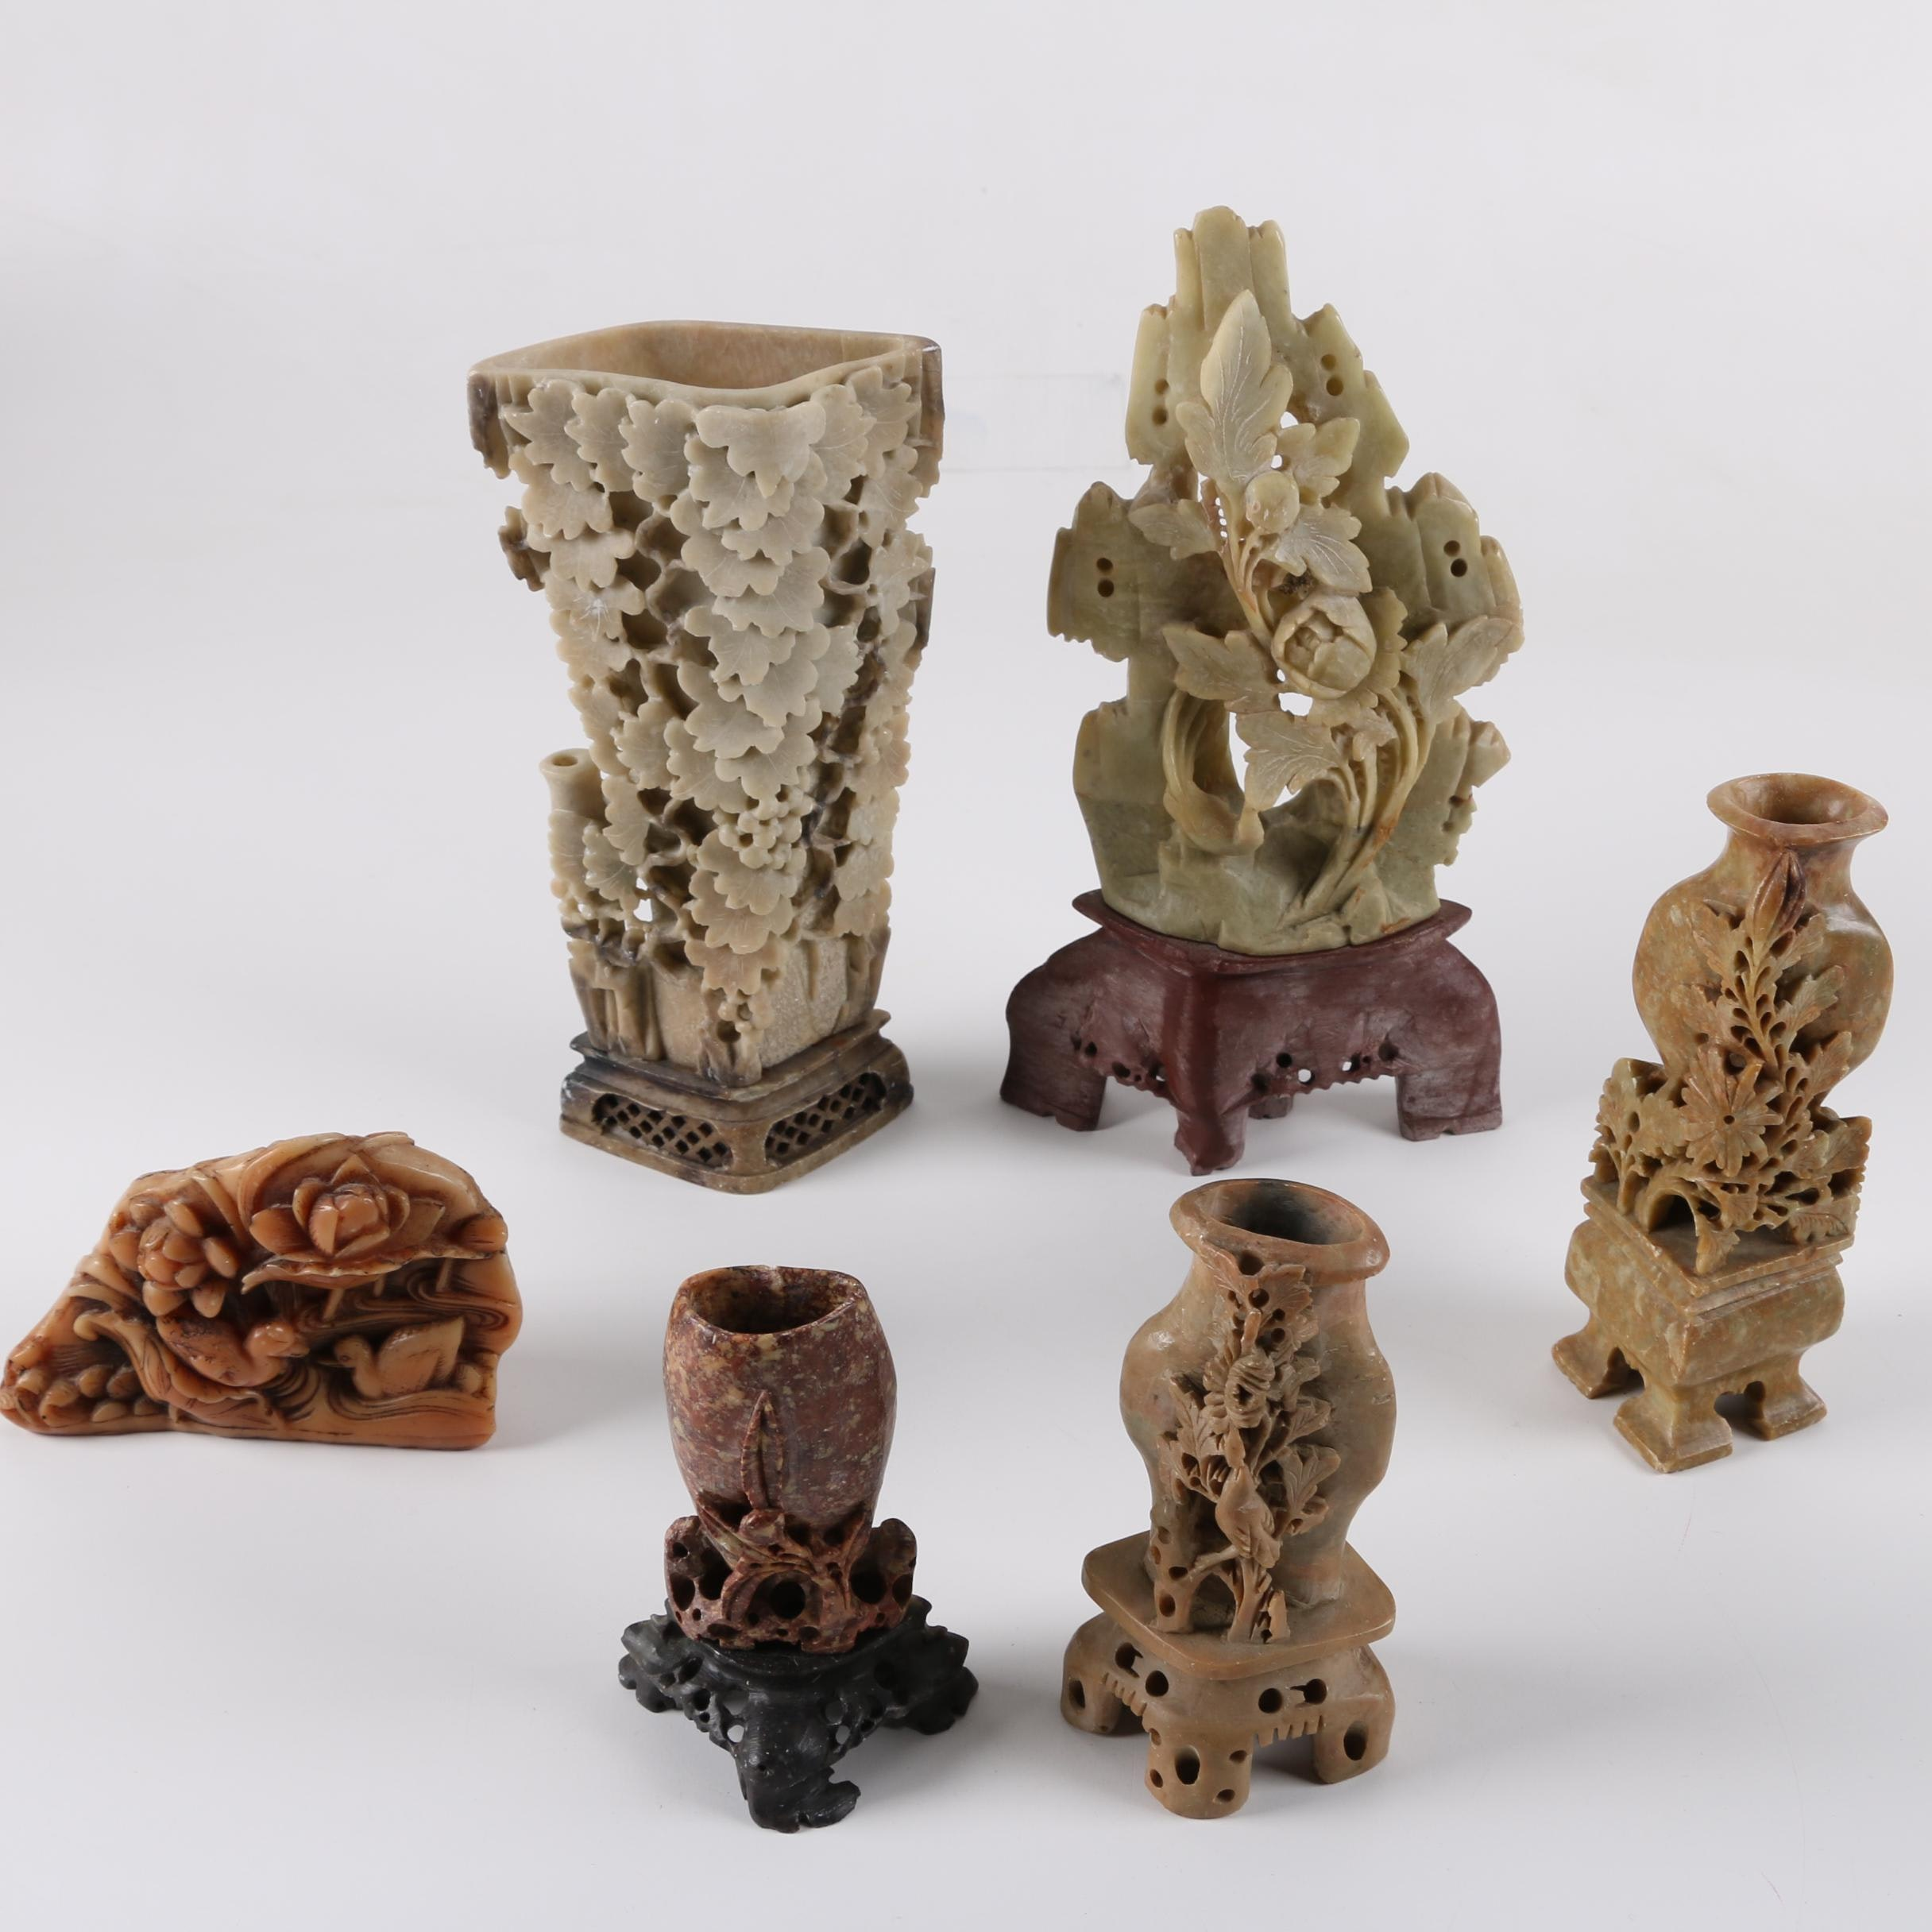 Chinese Soapstone and Plastic Vases and Figurines